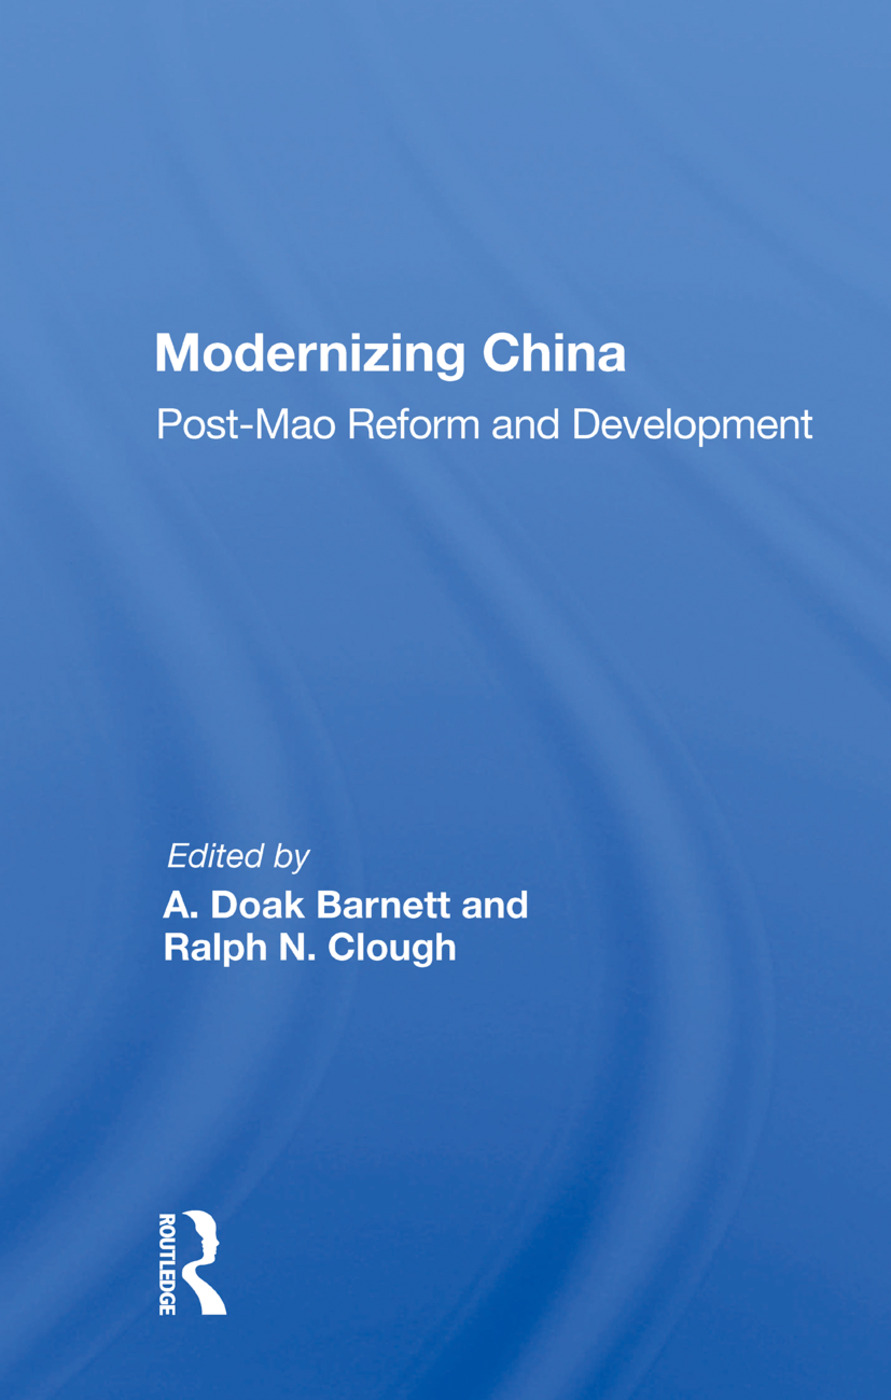 Modernizing China: Post-Mao Reform and Development book cover